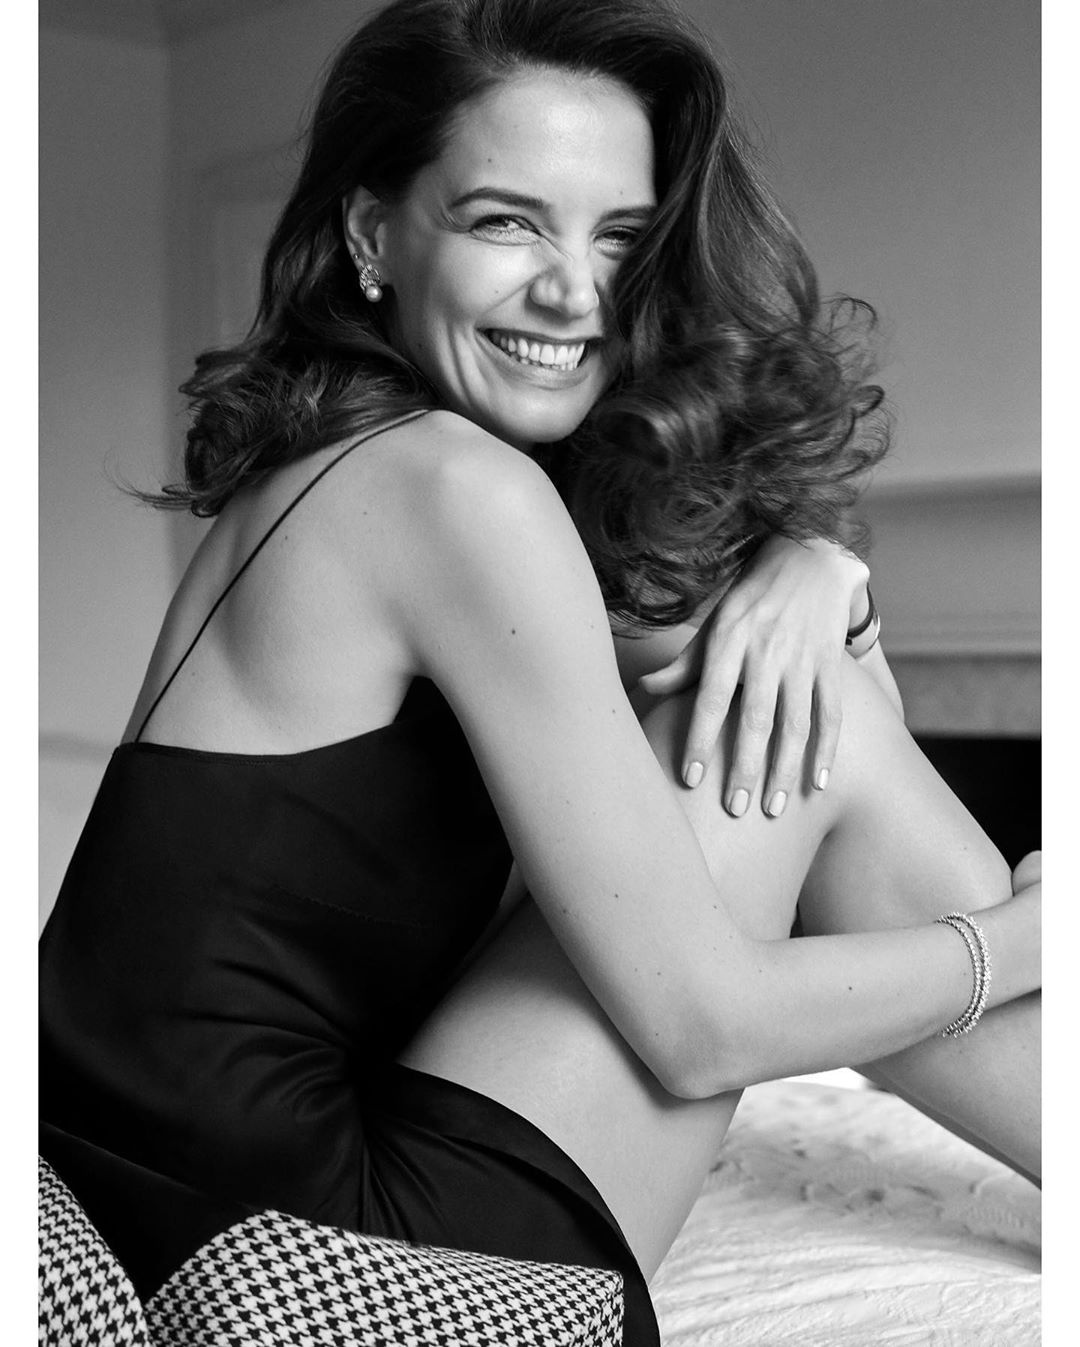 Katie Holmes khoe dang tuoi 42 hinh anh 3 instylemagazine_89390014_898682443923763_2715399775476270090_n.jpg